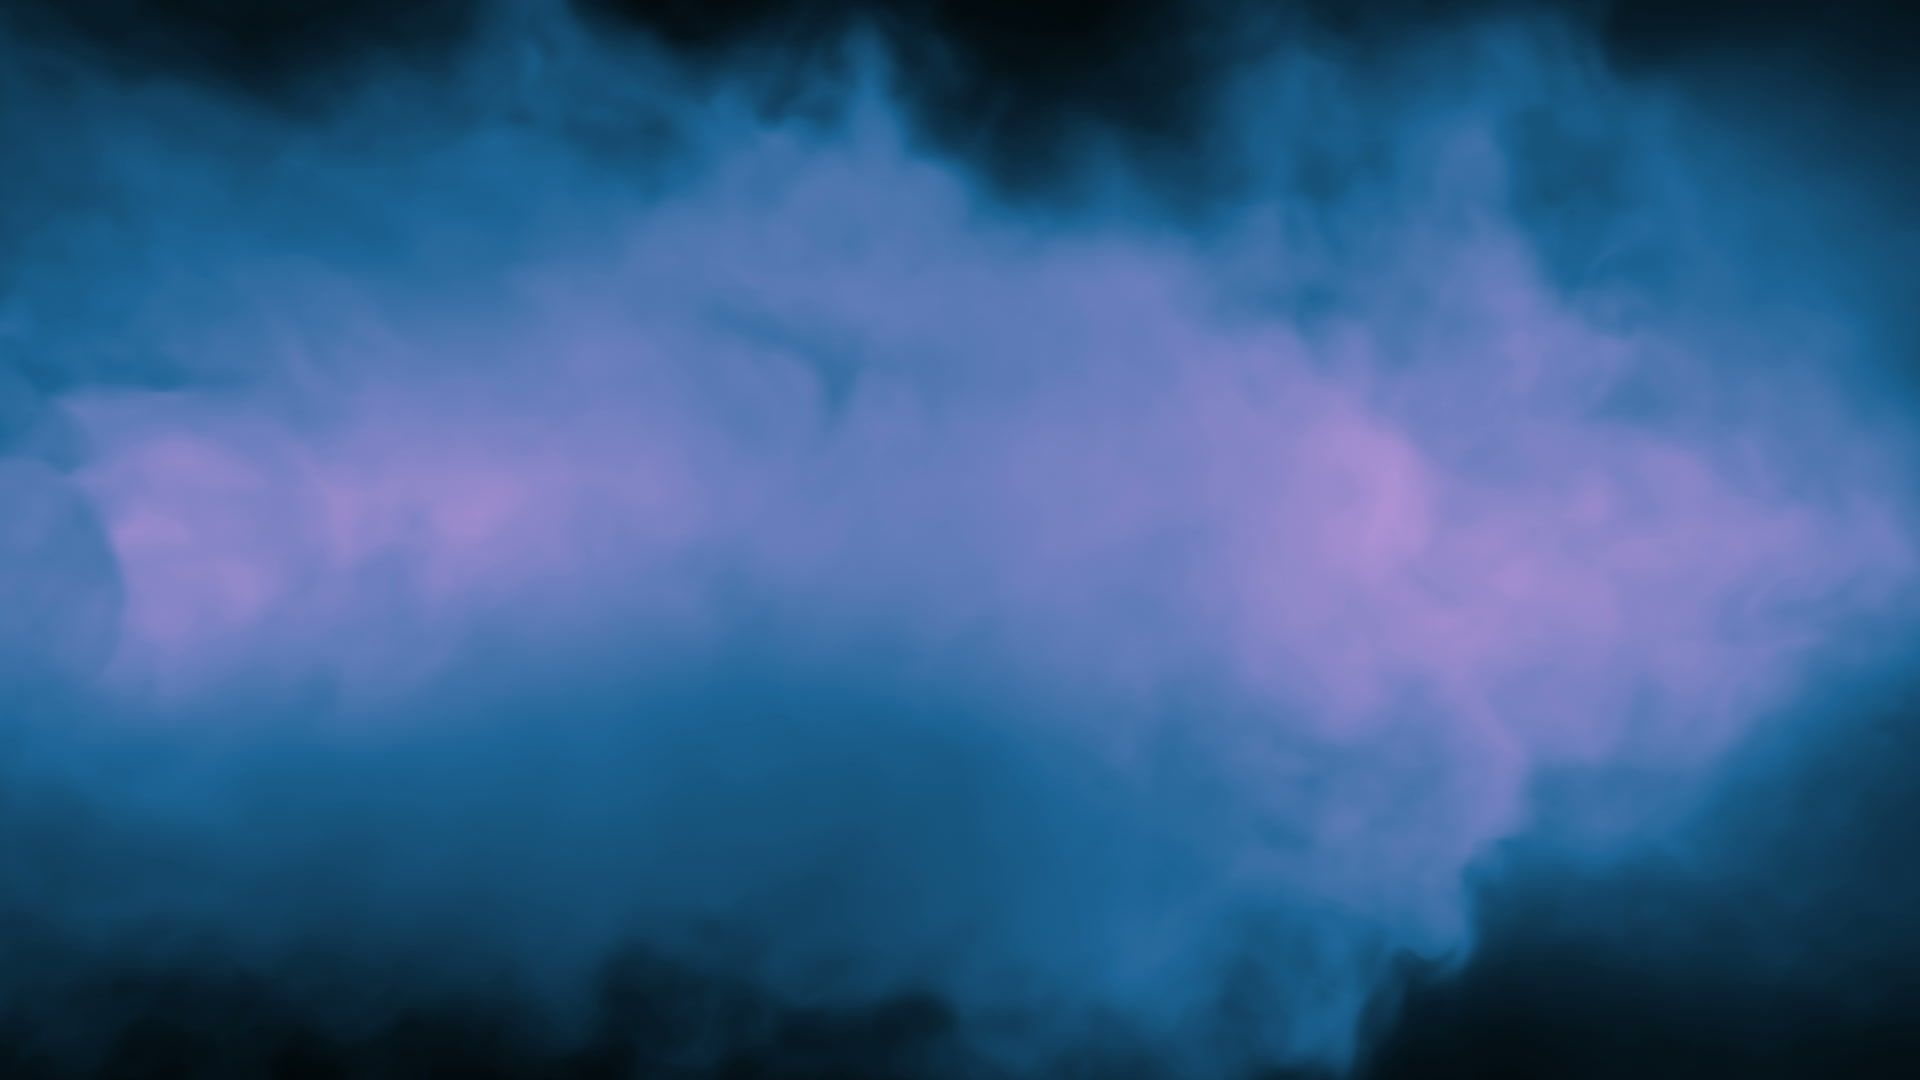 Magic Smoke 3D Live Wallpaper | APK Download For Android | 1080x1920